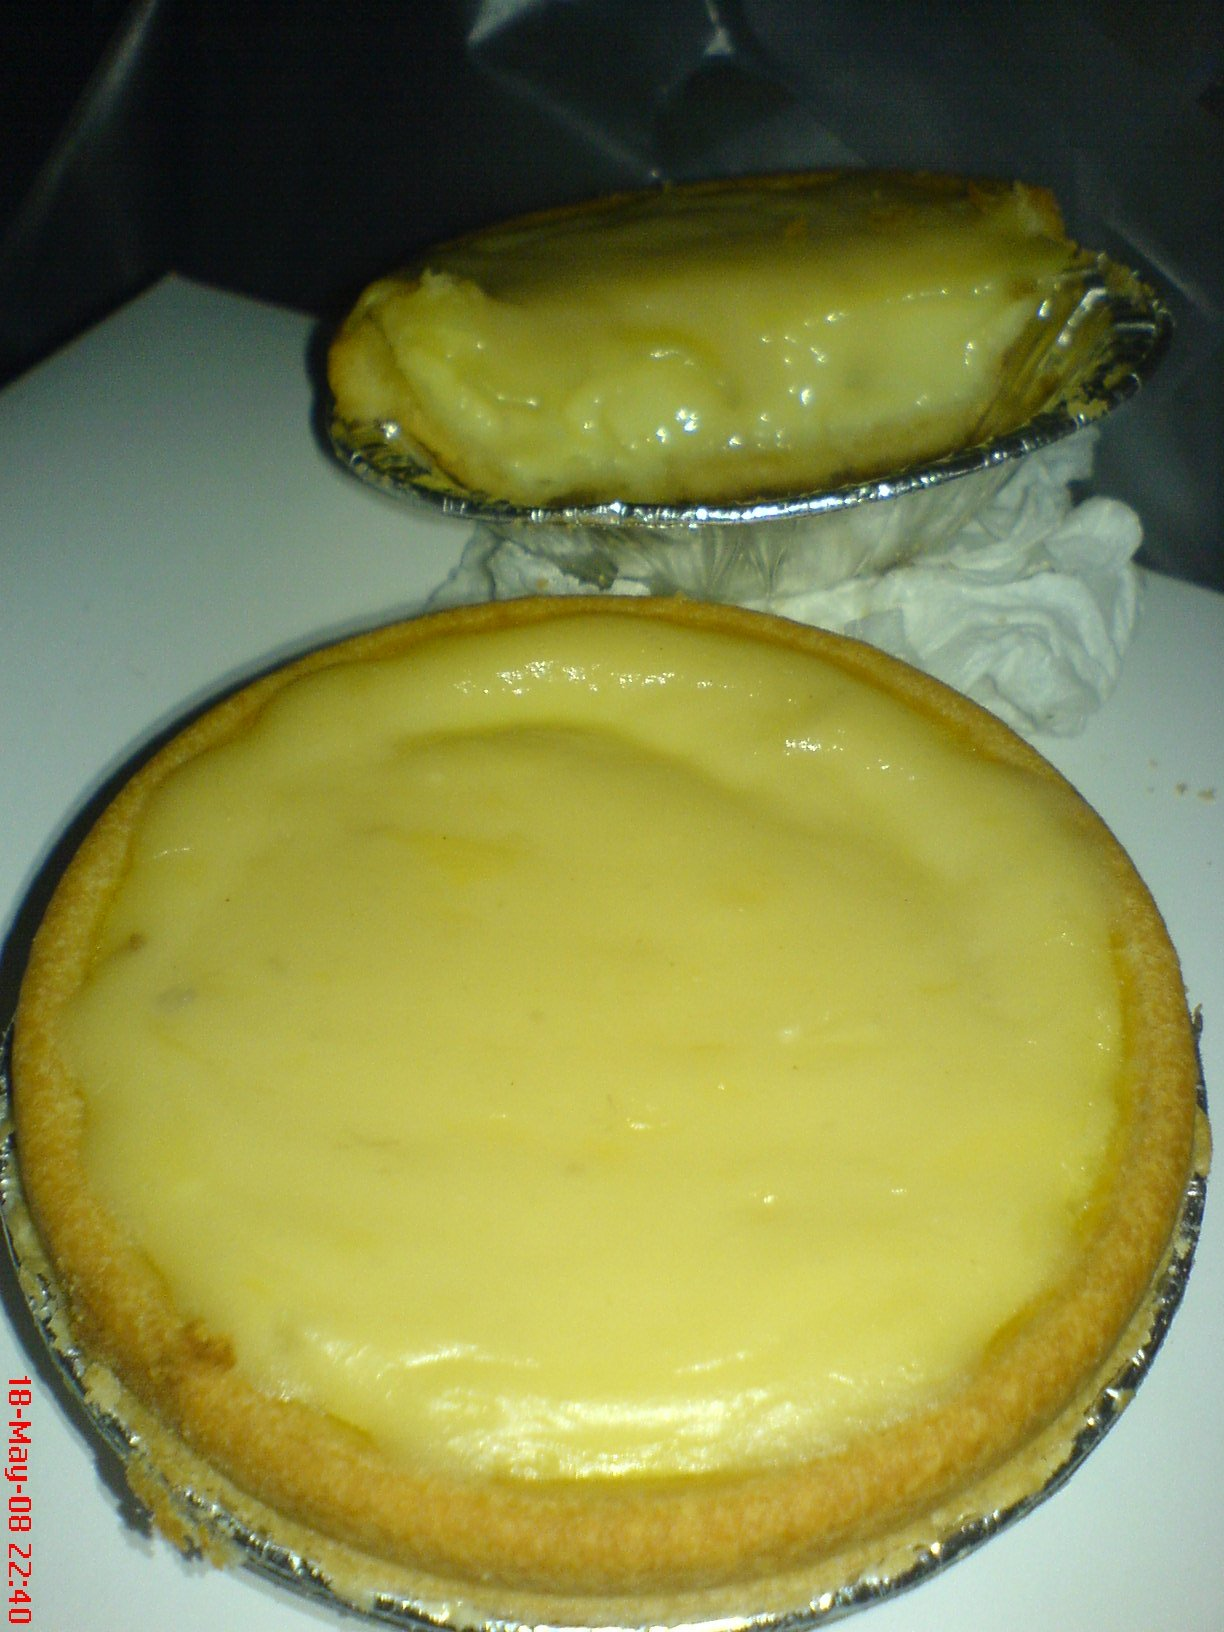 John King's egg & durian tarts